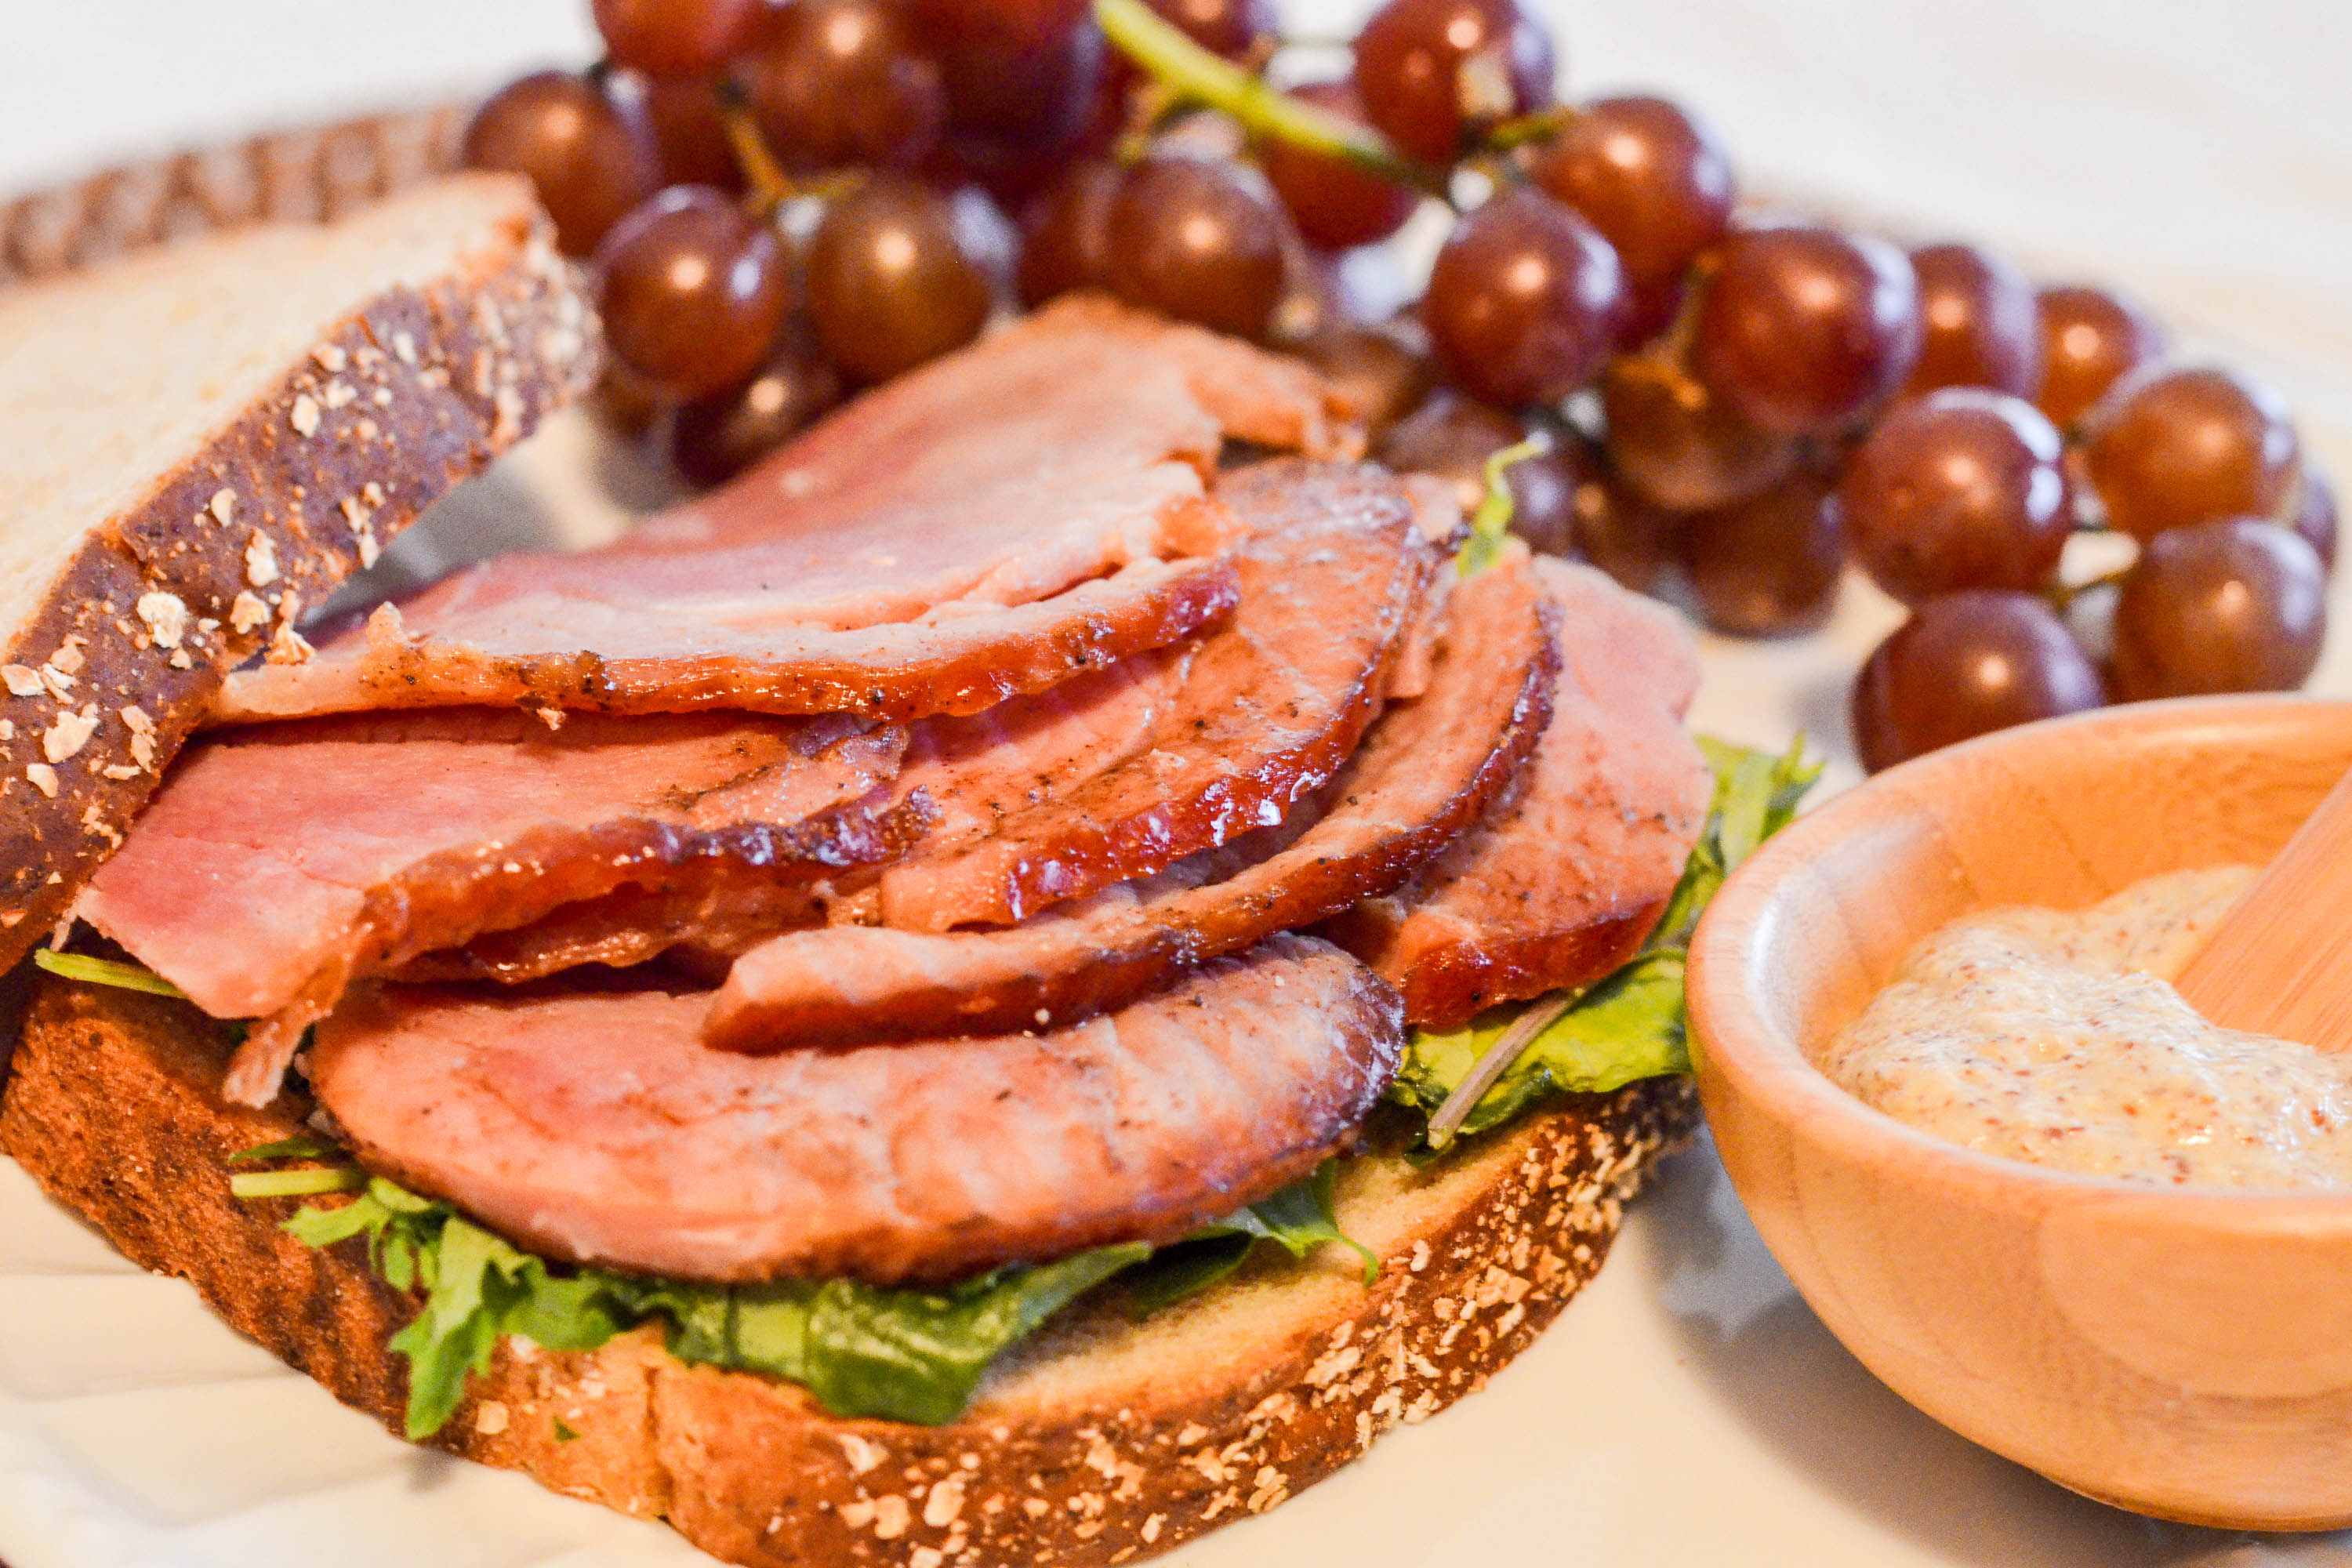 How To Cook A Kretschmar Fully Cooked Boneless Ham Livestrong